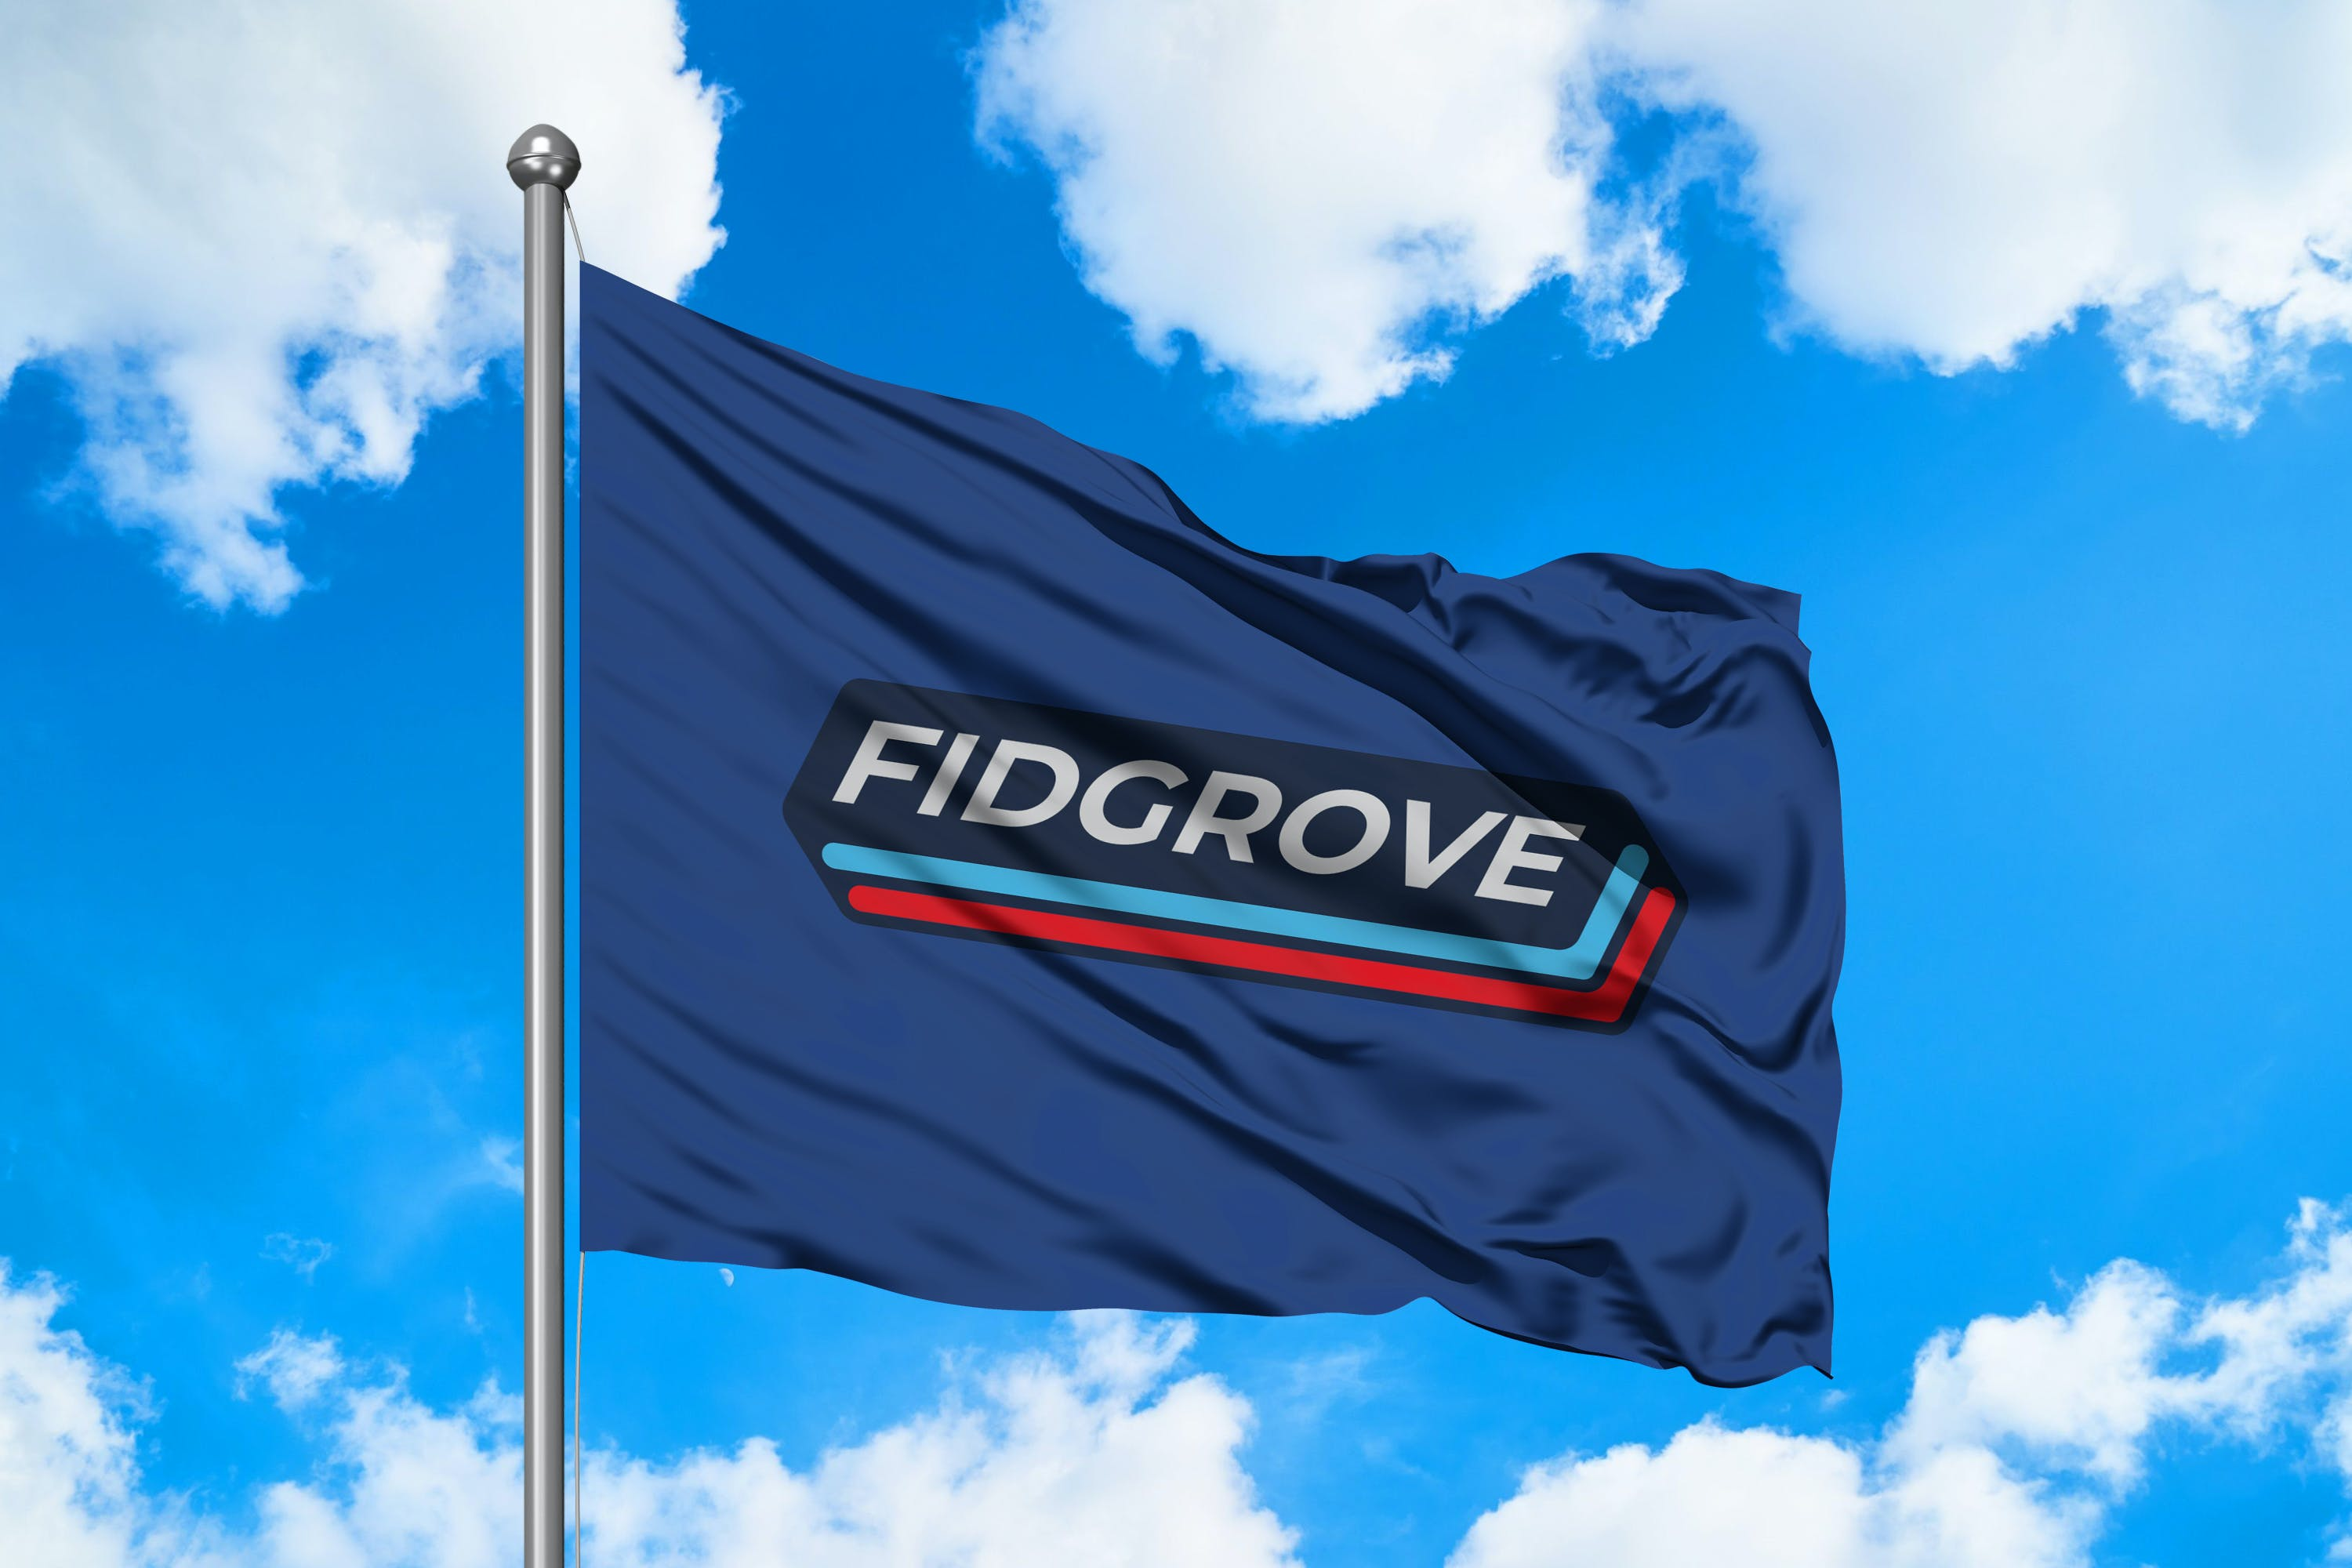 Fidgrove Join The Team